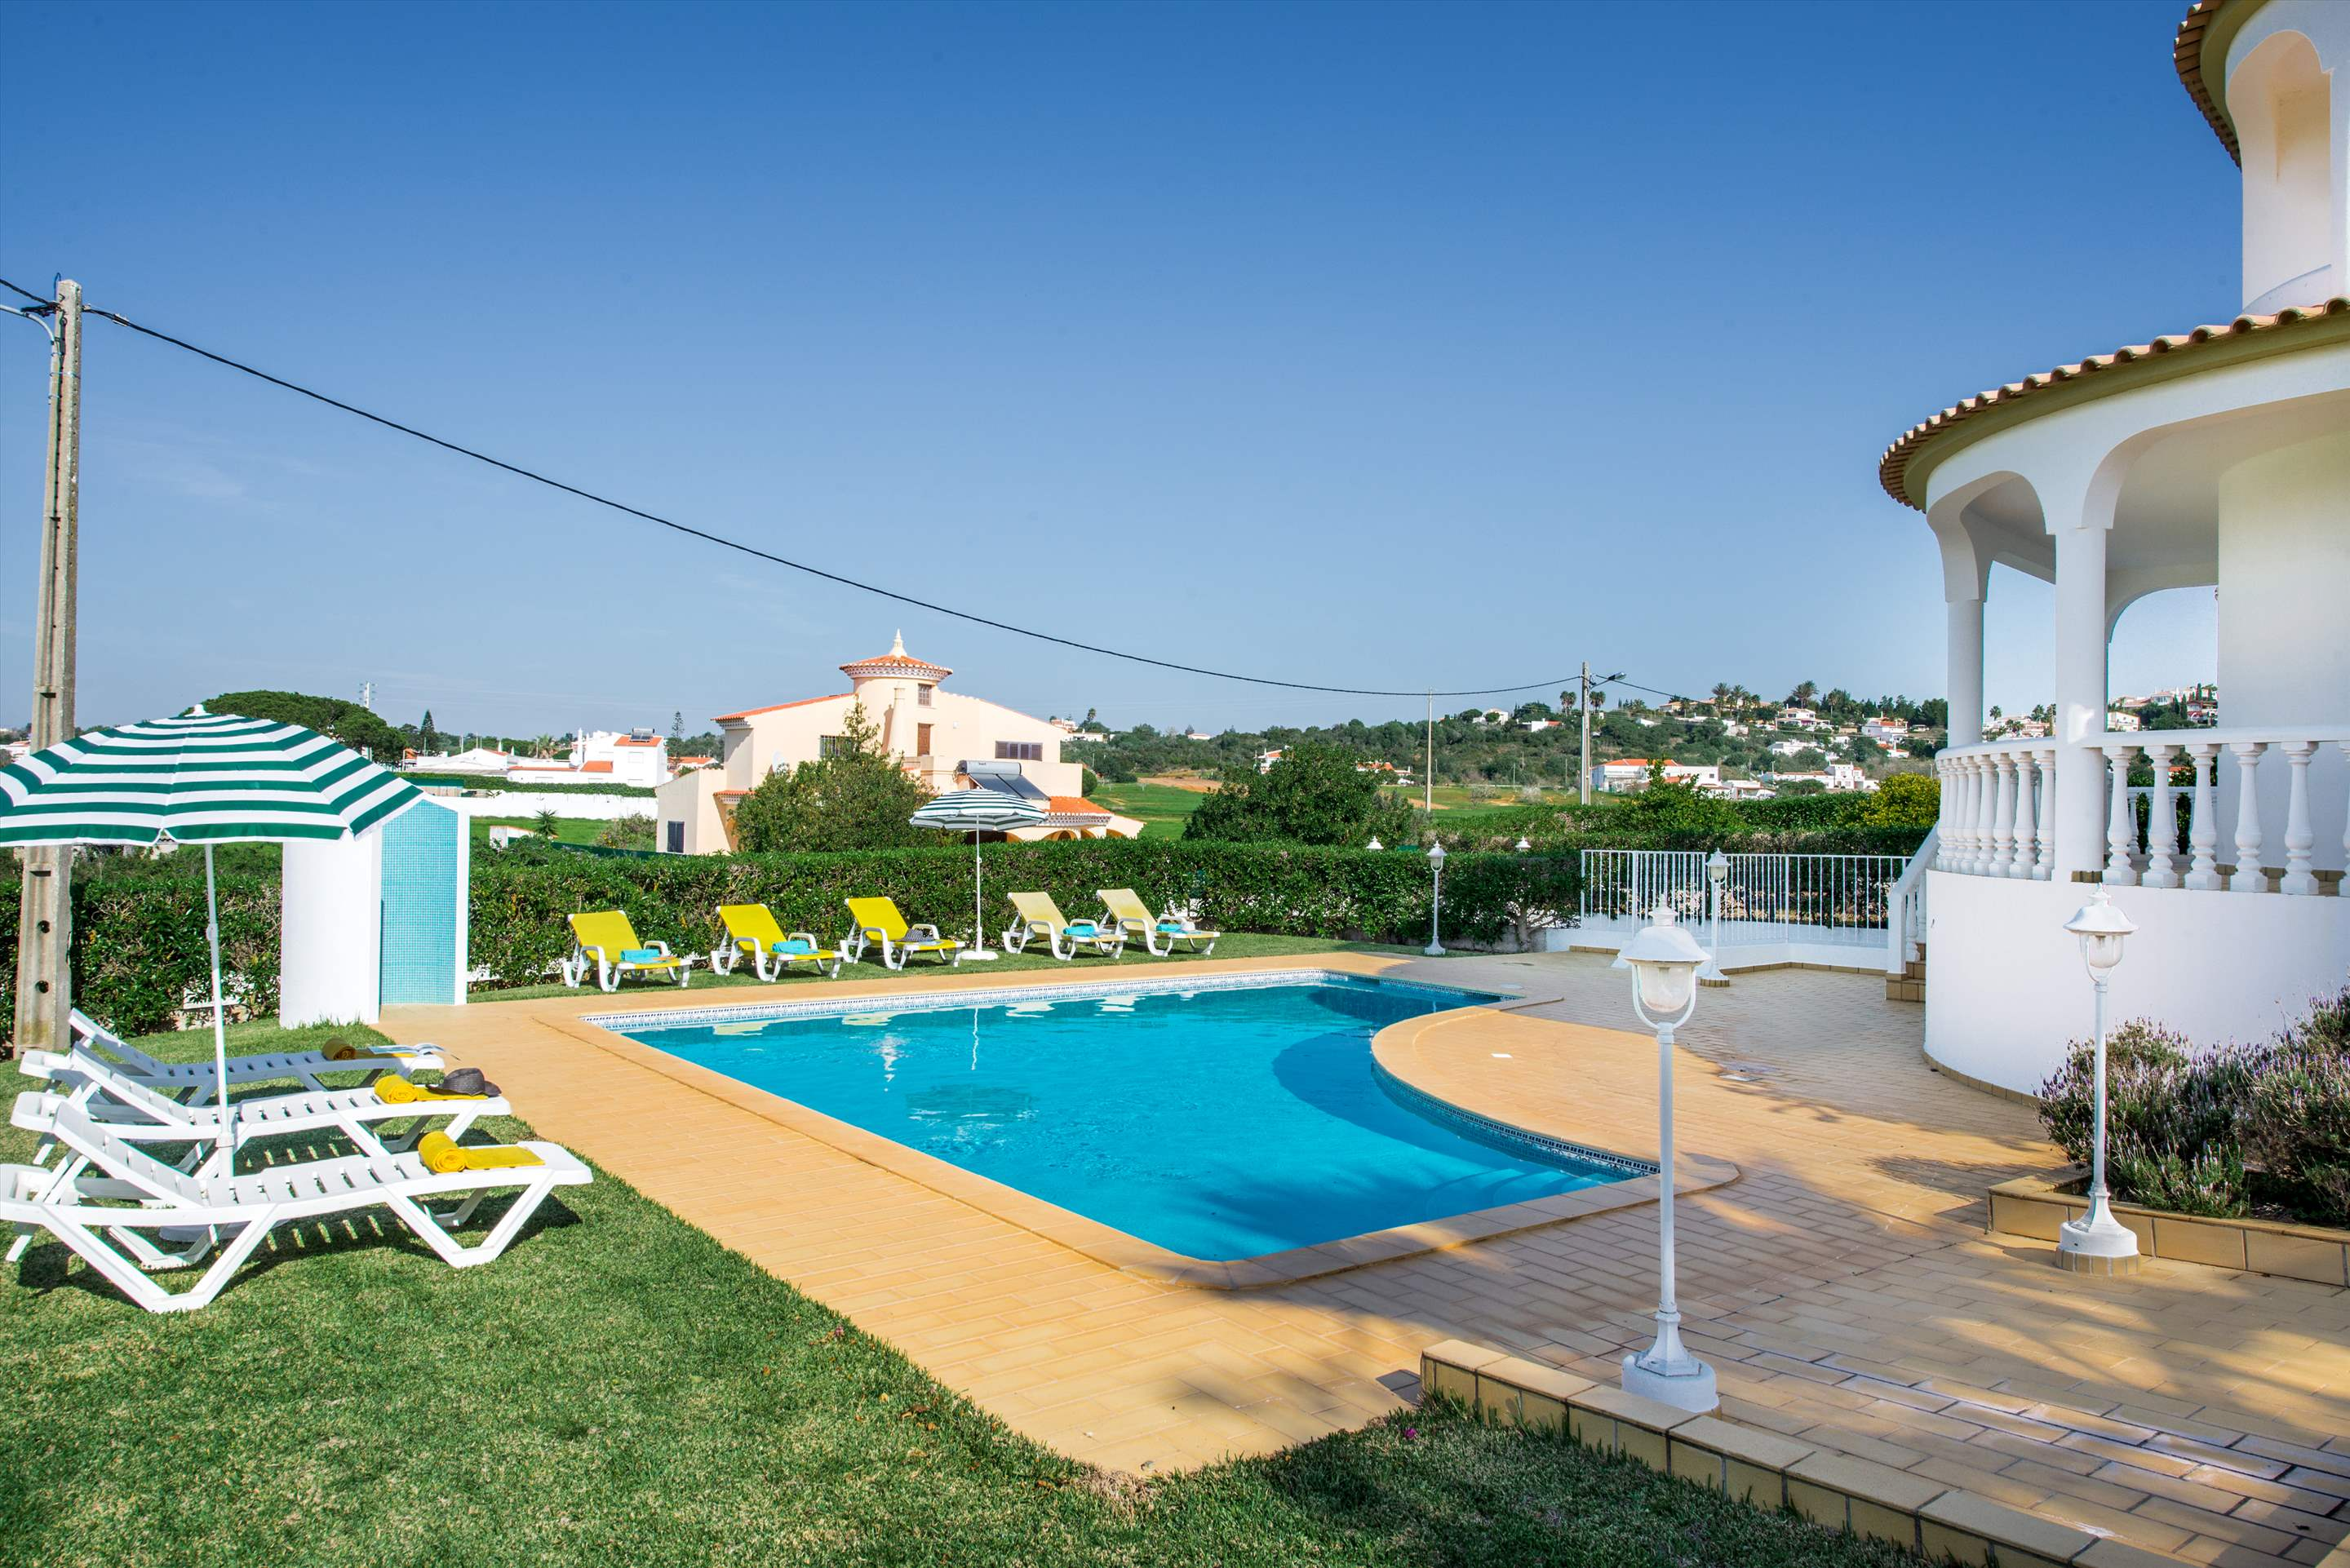 Villa Marco Real, 7-8 persons rate, 4 bedroom villa in Gale, Vale da Parra and Guia, Algarve Photo #24